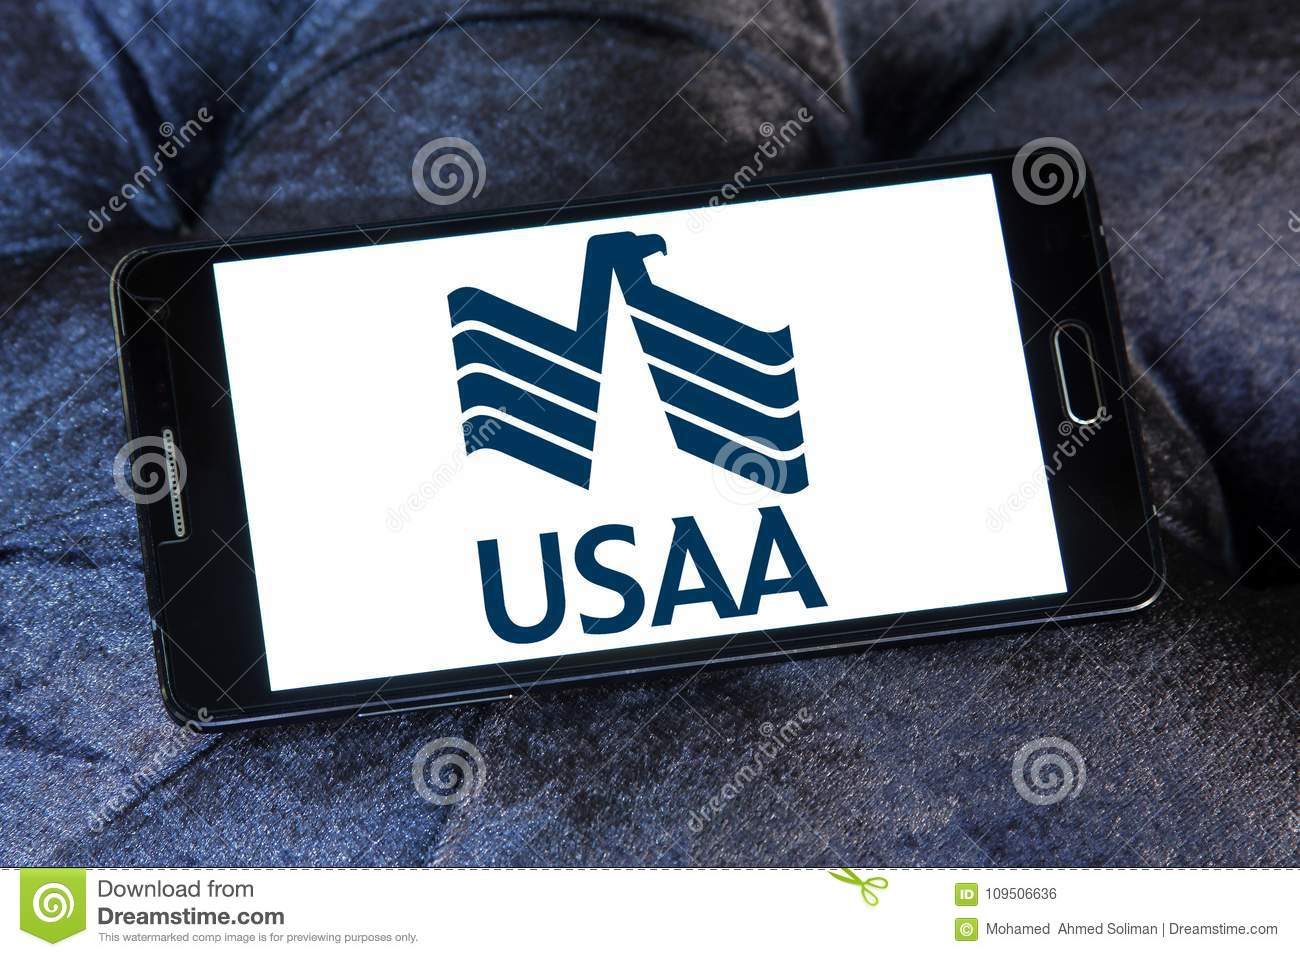 Usaa Company Logo Editorial Photo Illustration Of Global 109506636